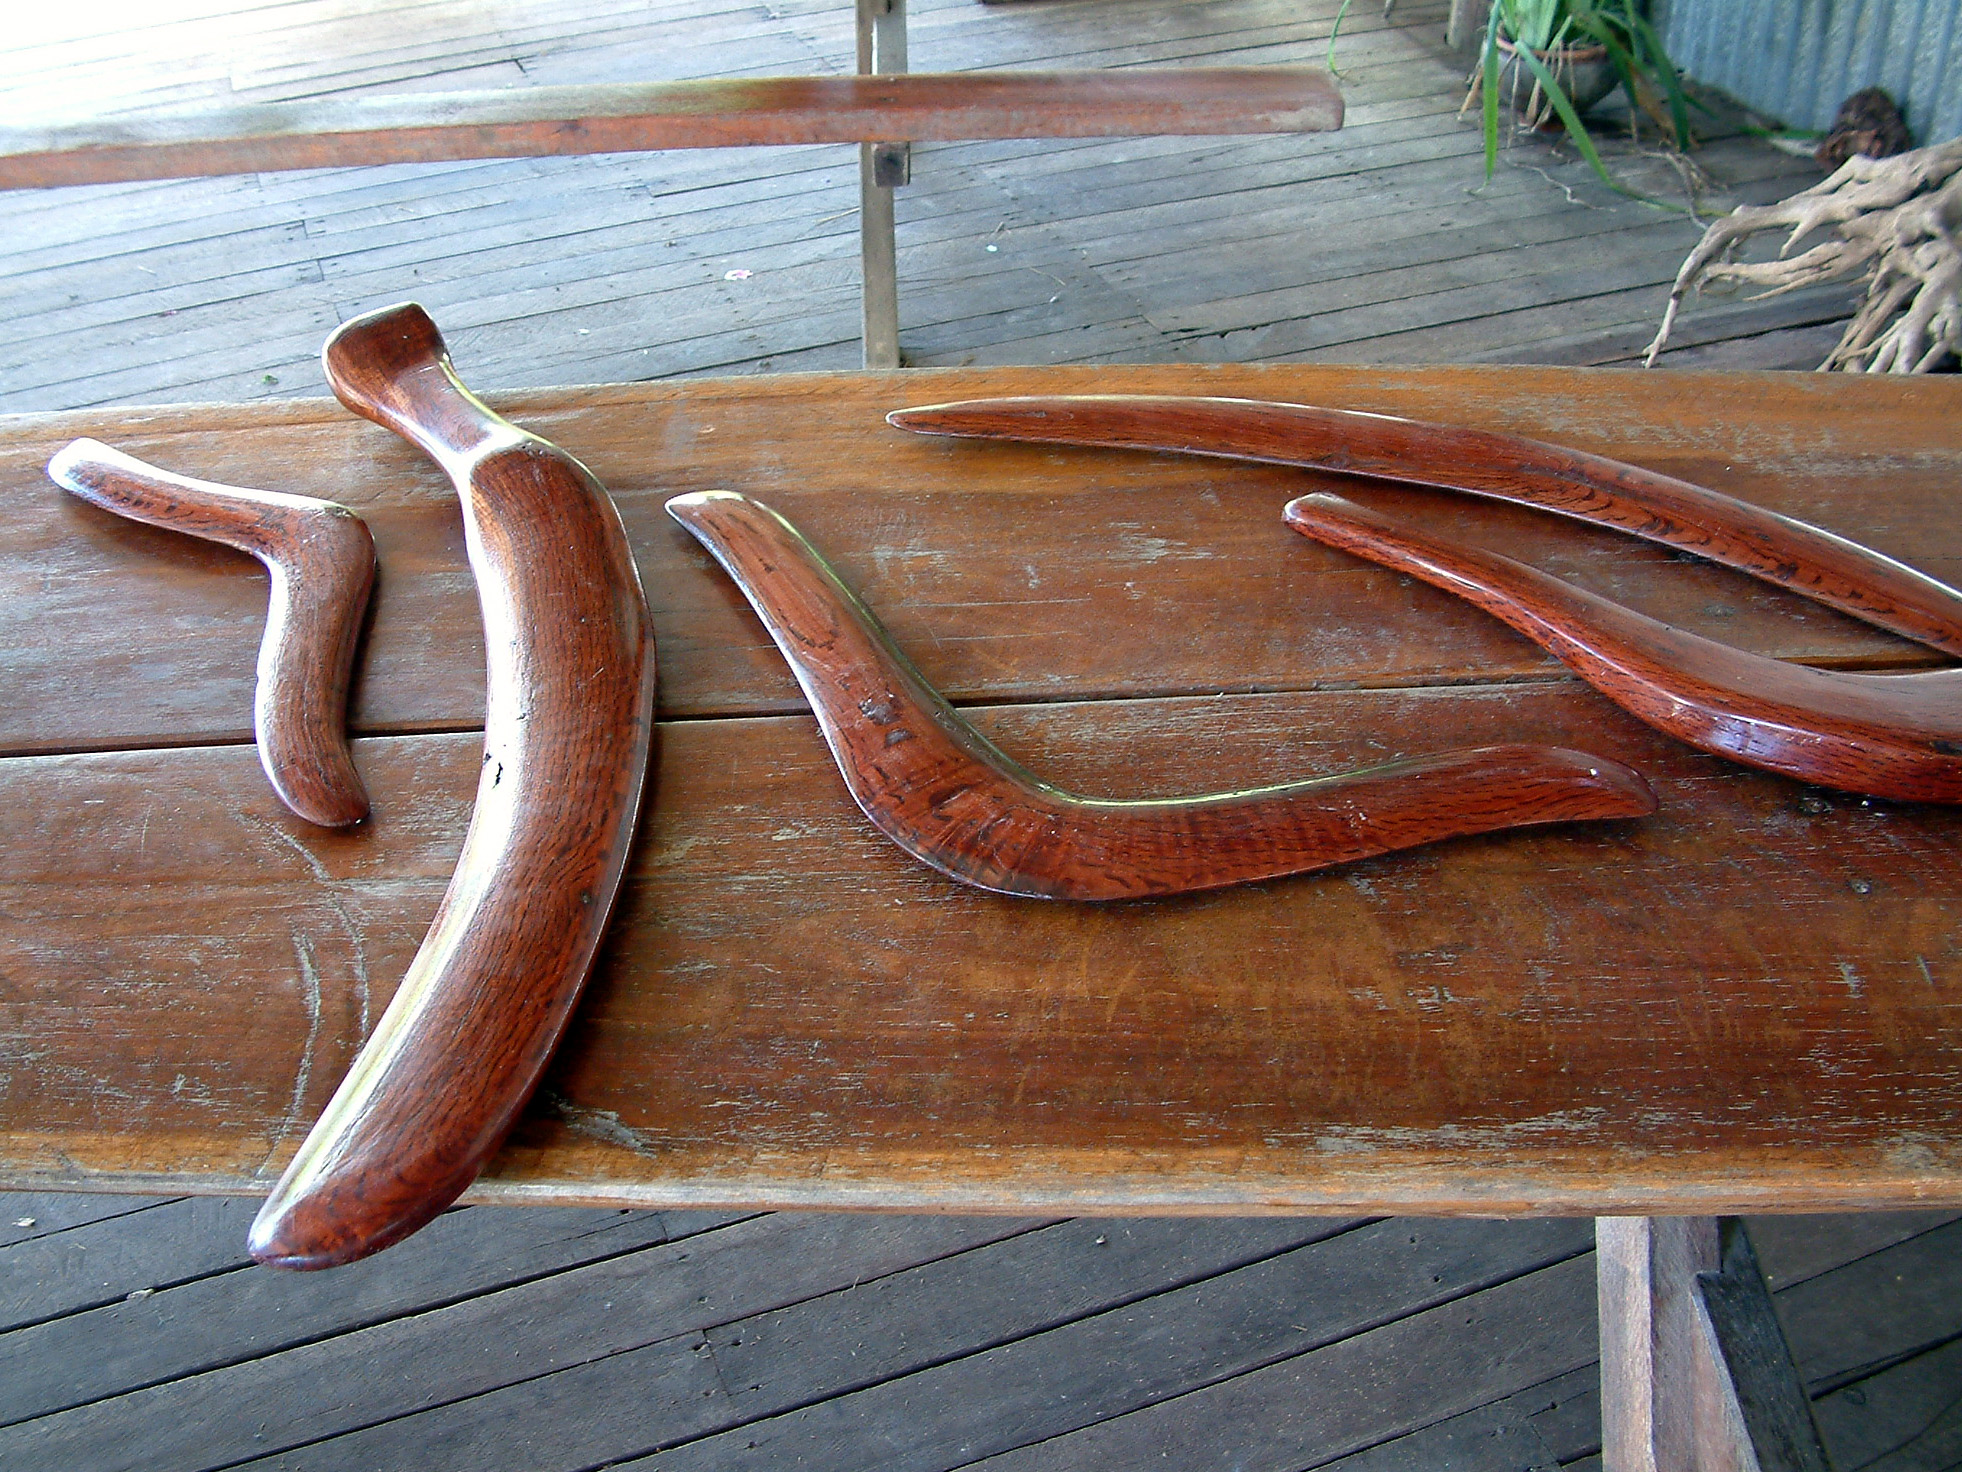 Analysis Of Ancient Aboriginal Skeleton Indicates Boomerangs Were Once Used As Lethal Weapons